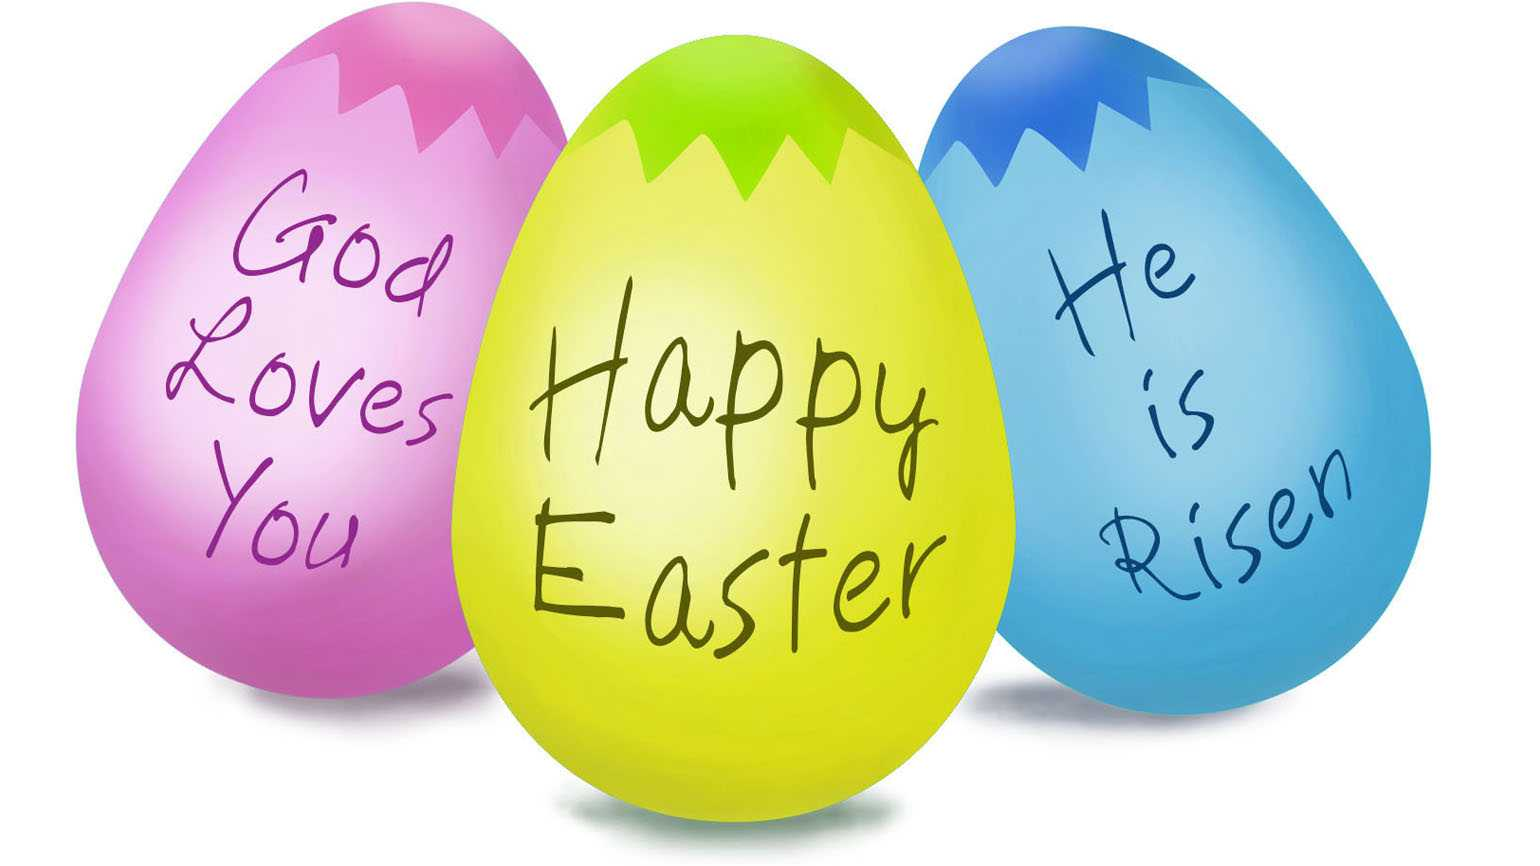 Three colorful Easter eggs with inspirational messages written on them.